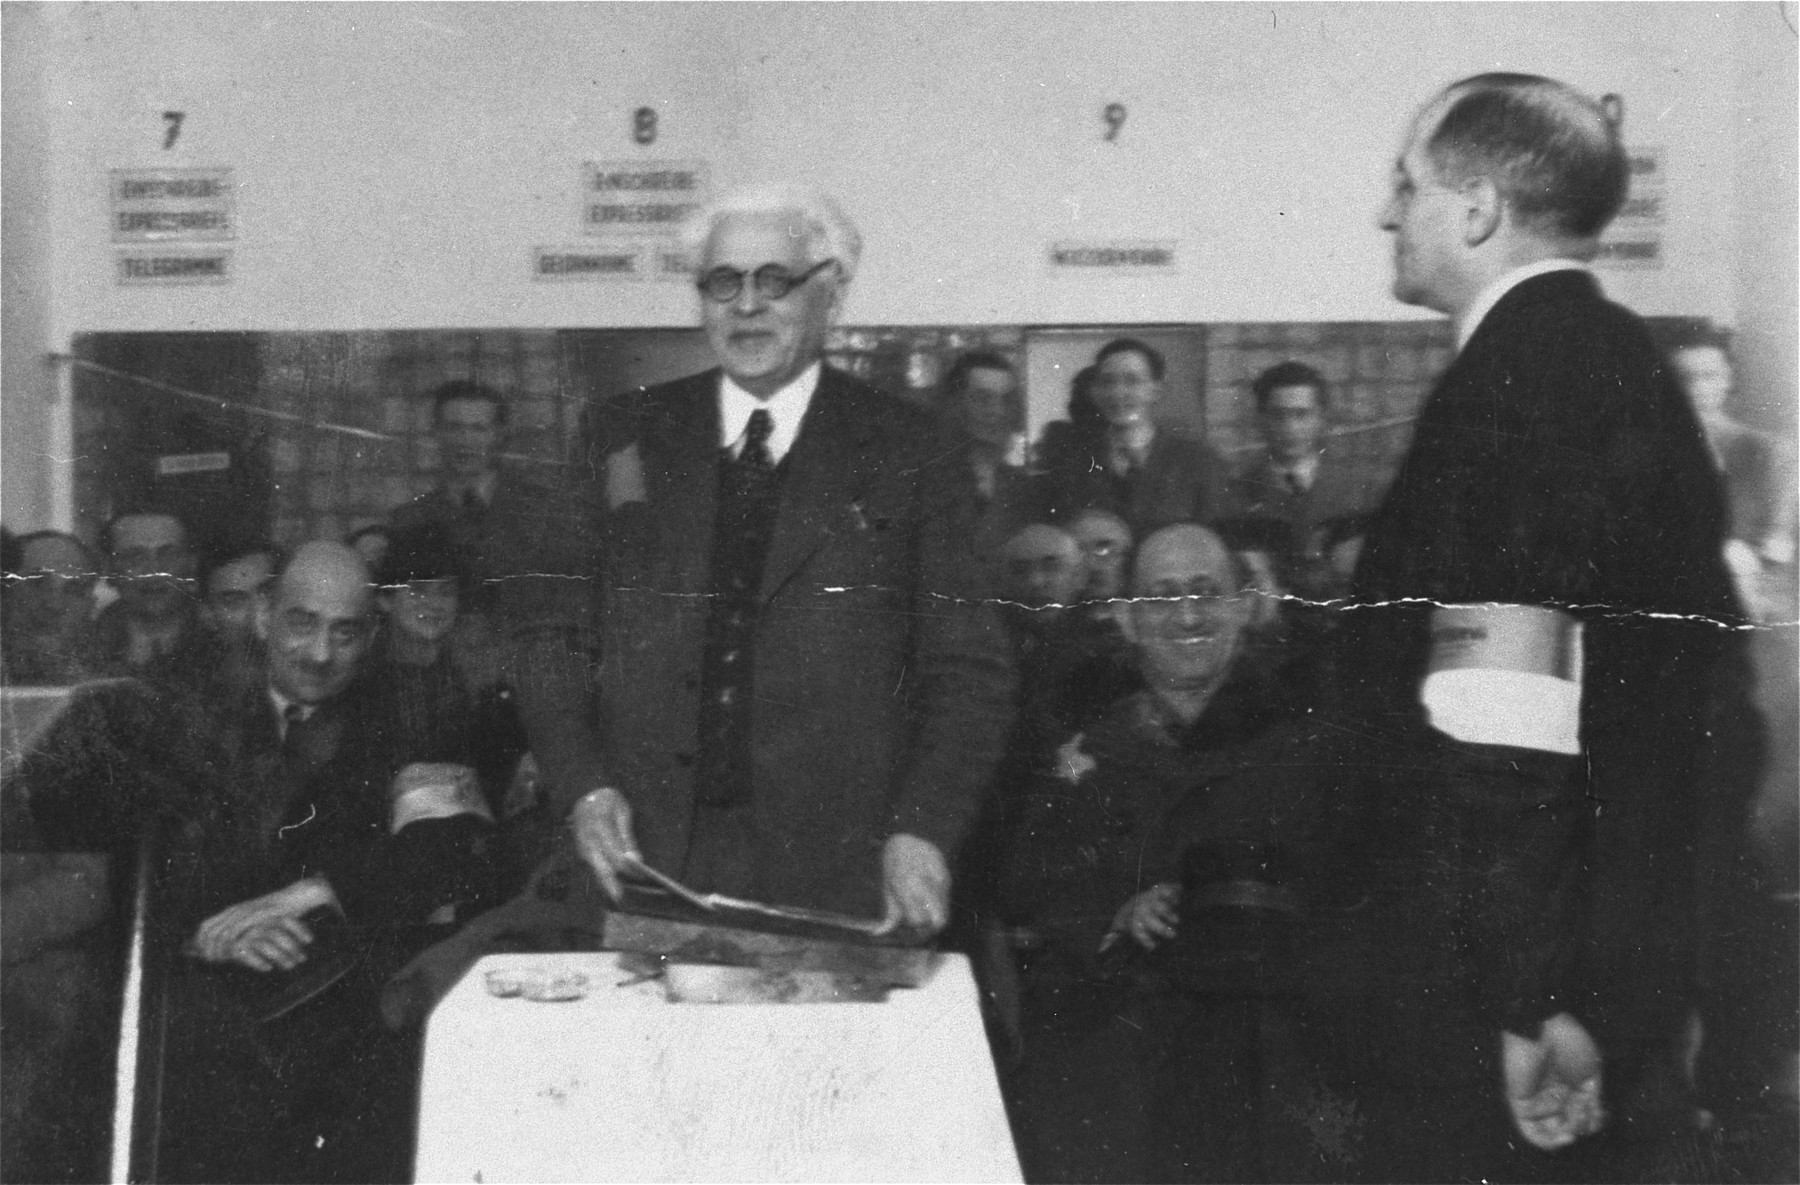 Jewish council chairman Mordechai Chaim Rumkowski, delivers a speech after receiving a presentation album at a ceremony in the Lodz ghetto.    Among those pictured are Leon Rozenblat (seated on the left) and Dr. Leon Szykier (stands on the right).